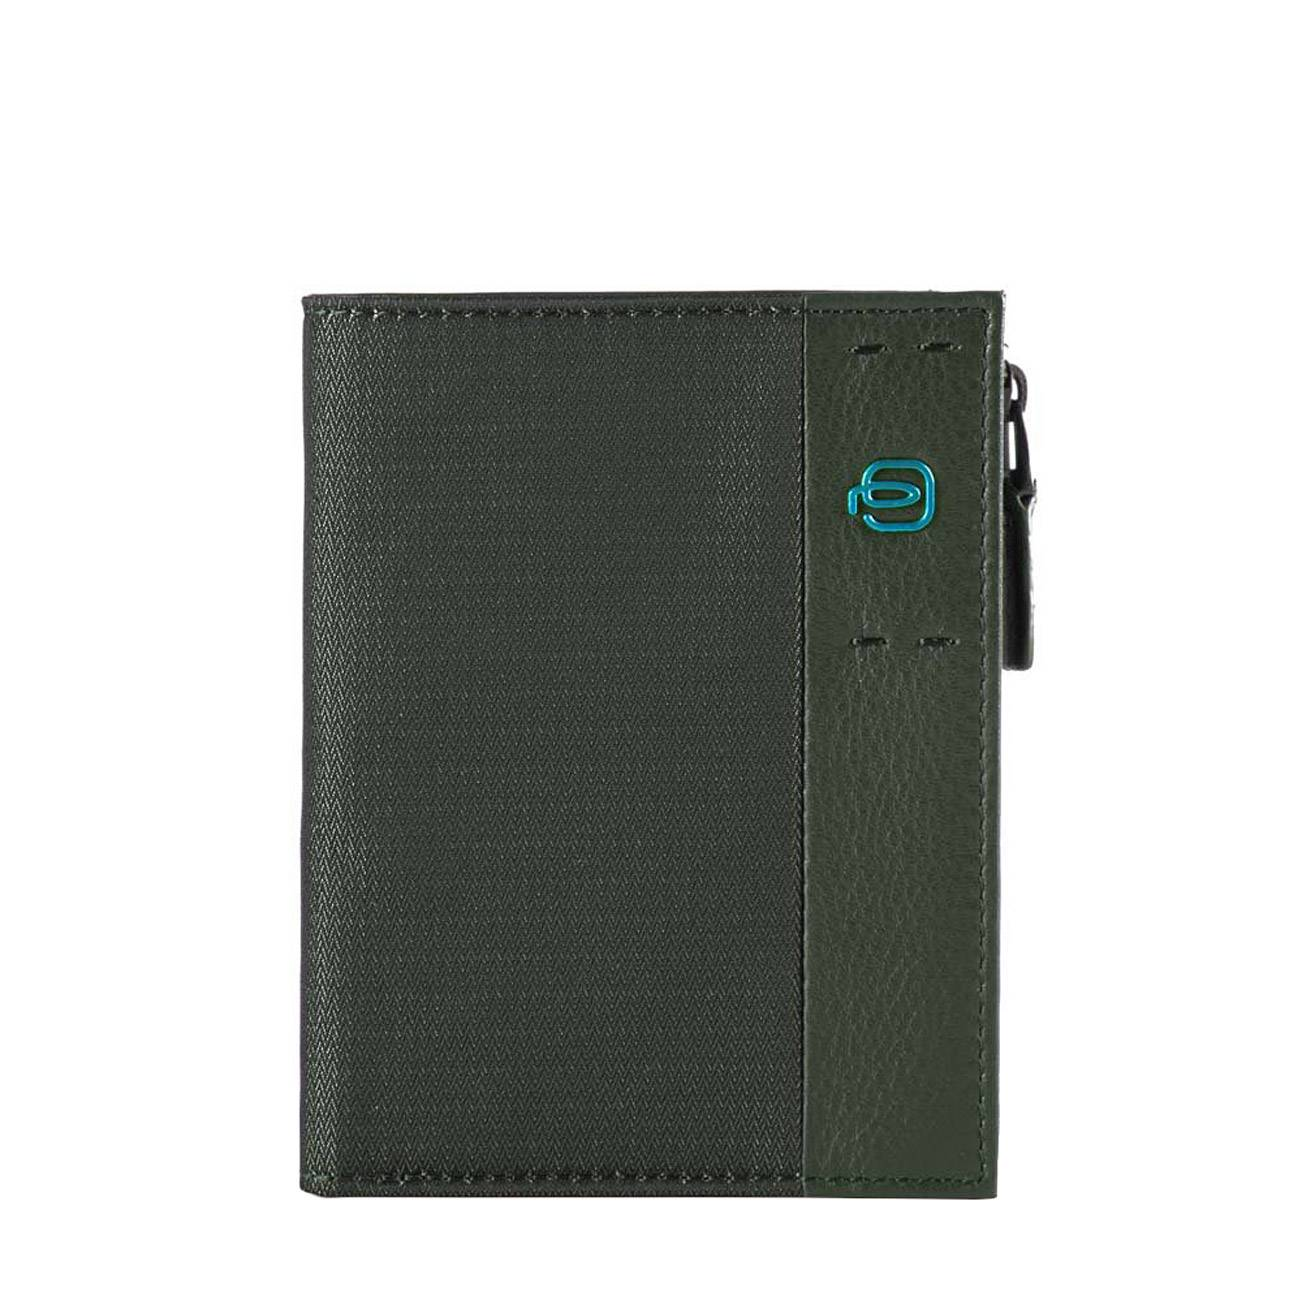 P16 WALLET WITH COIN POCKET